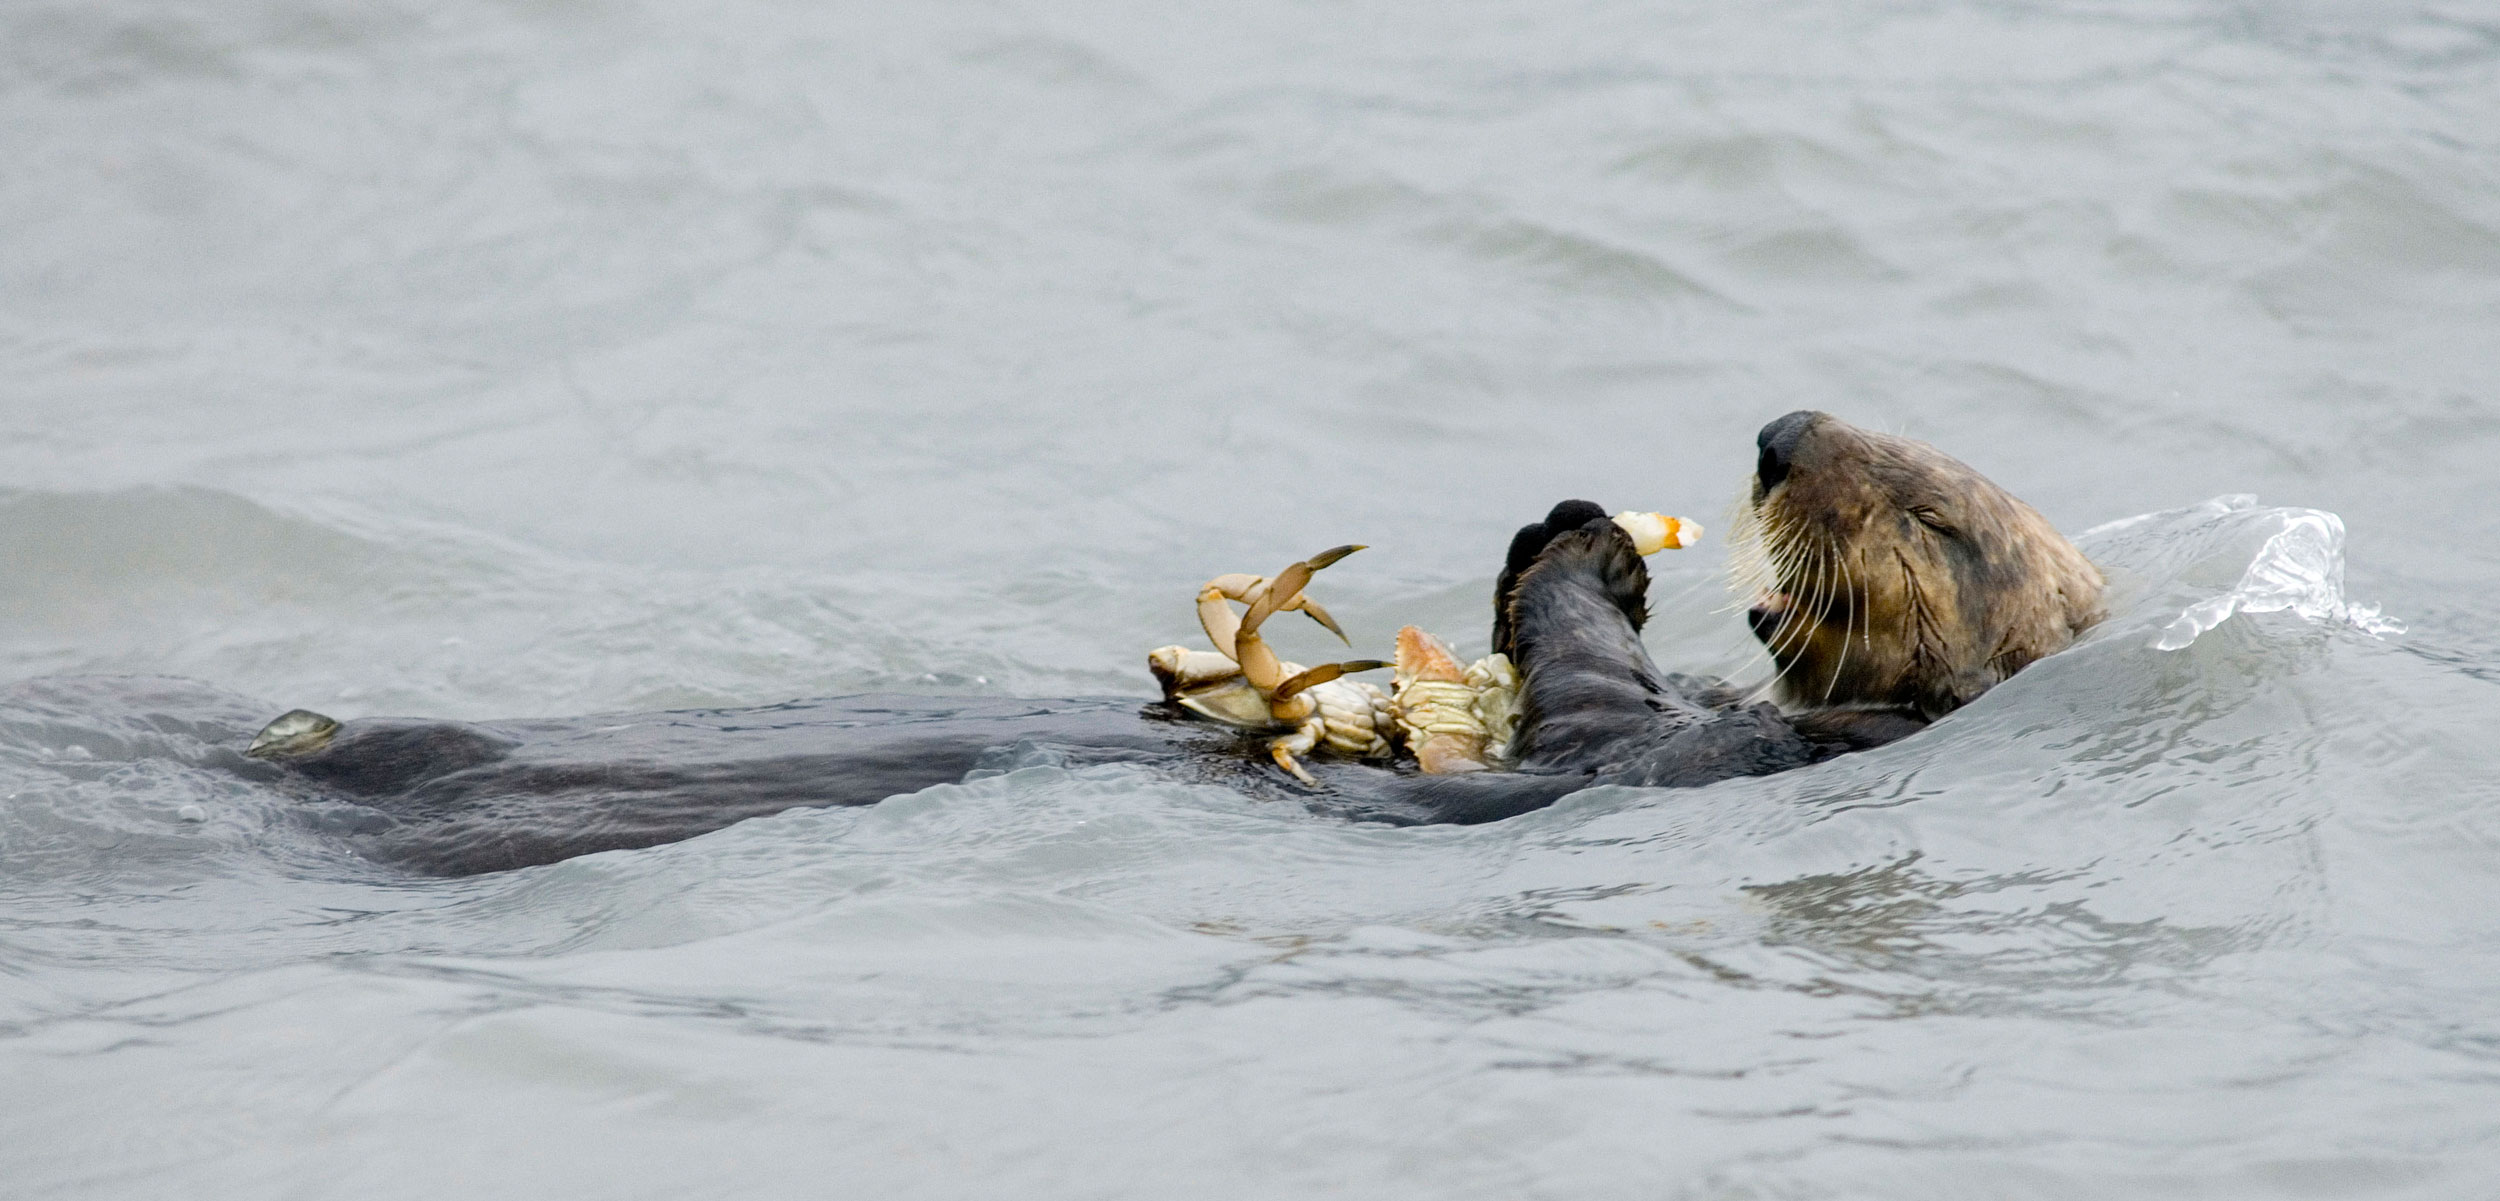 Sea otter (Enhydra lutris) eating a dungeness crab